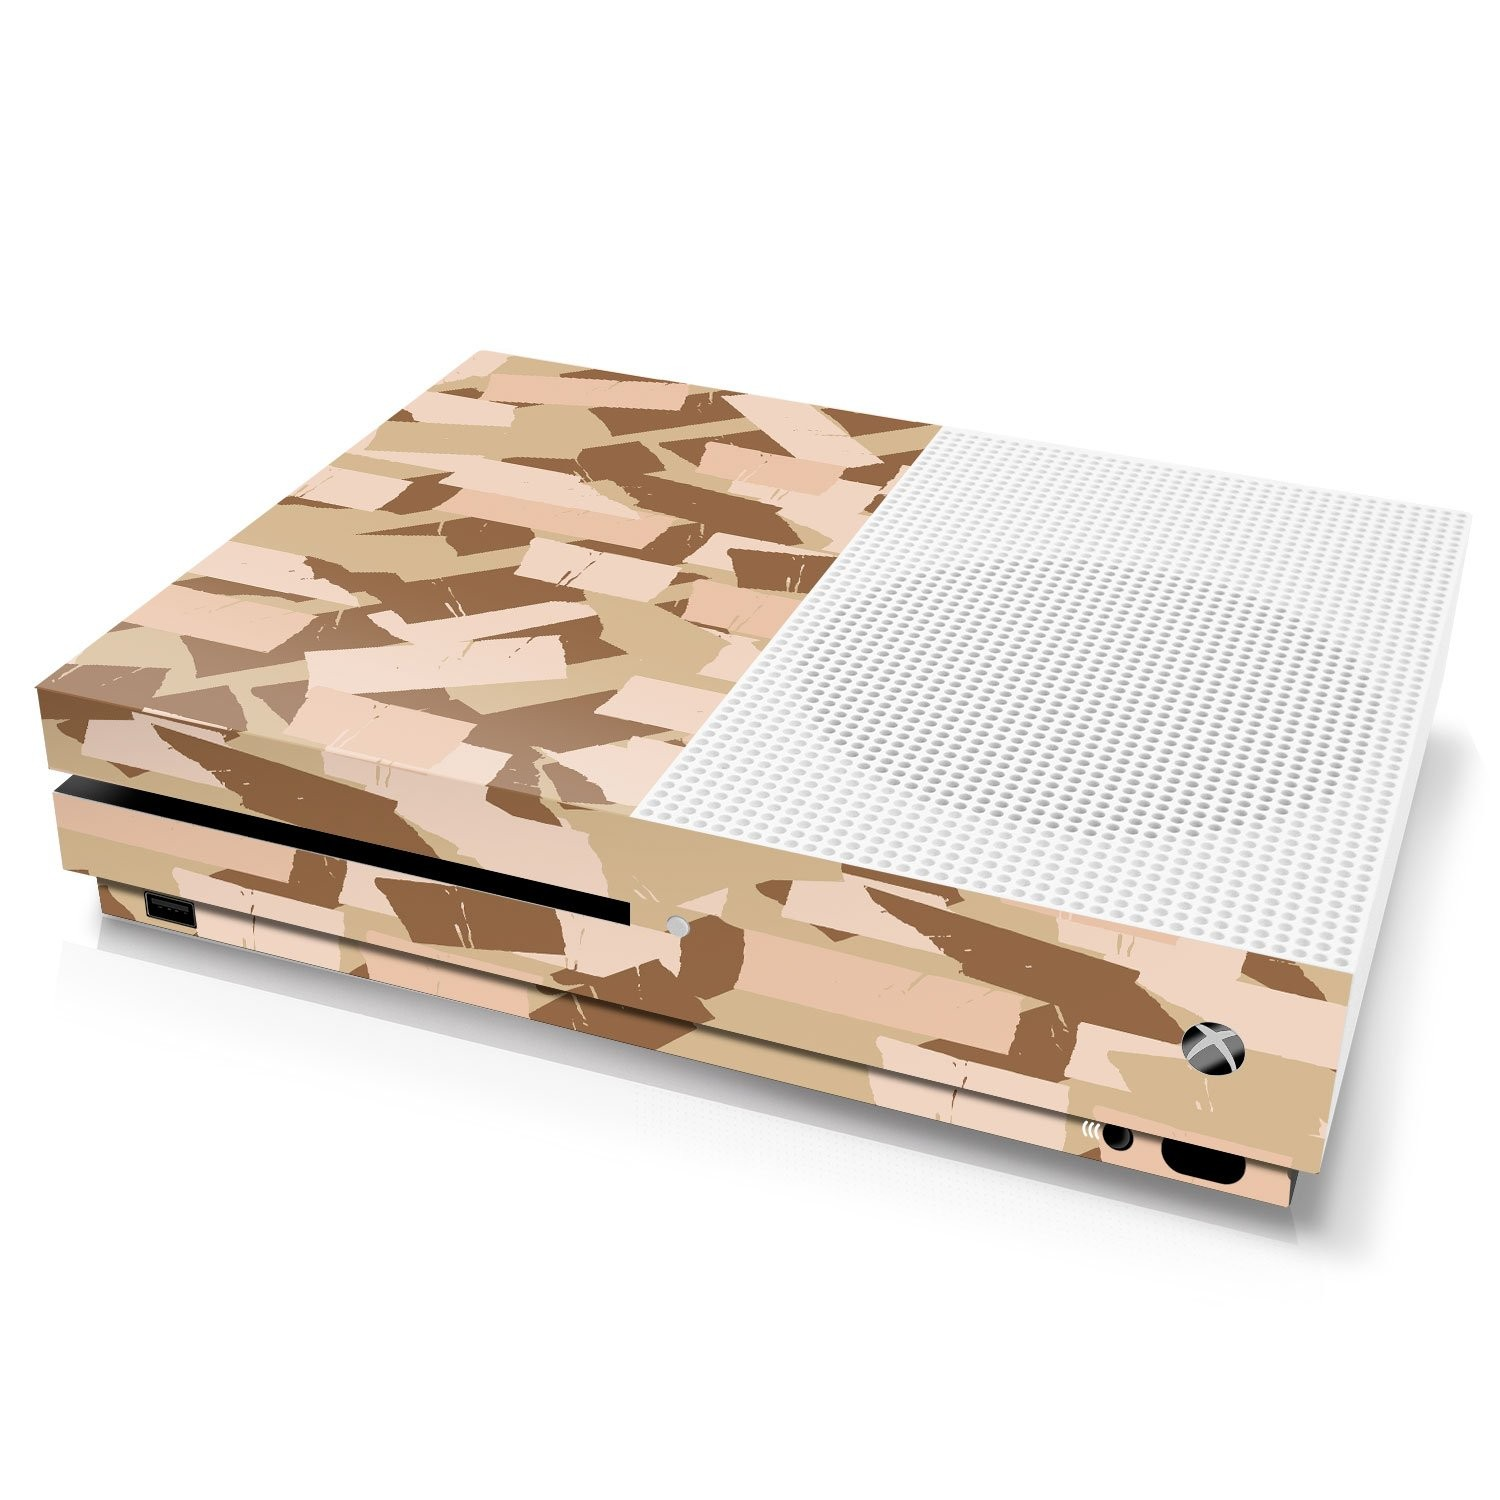 Xbox One S Console Skin - Camouflage: Desert Torn Tape - Officially Licensed by Xbox